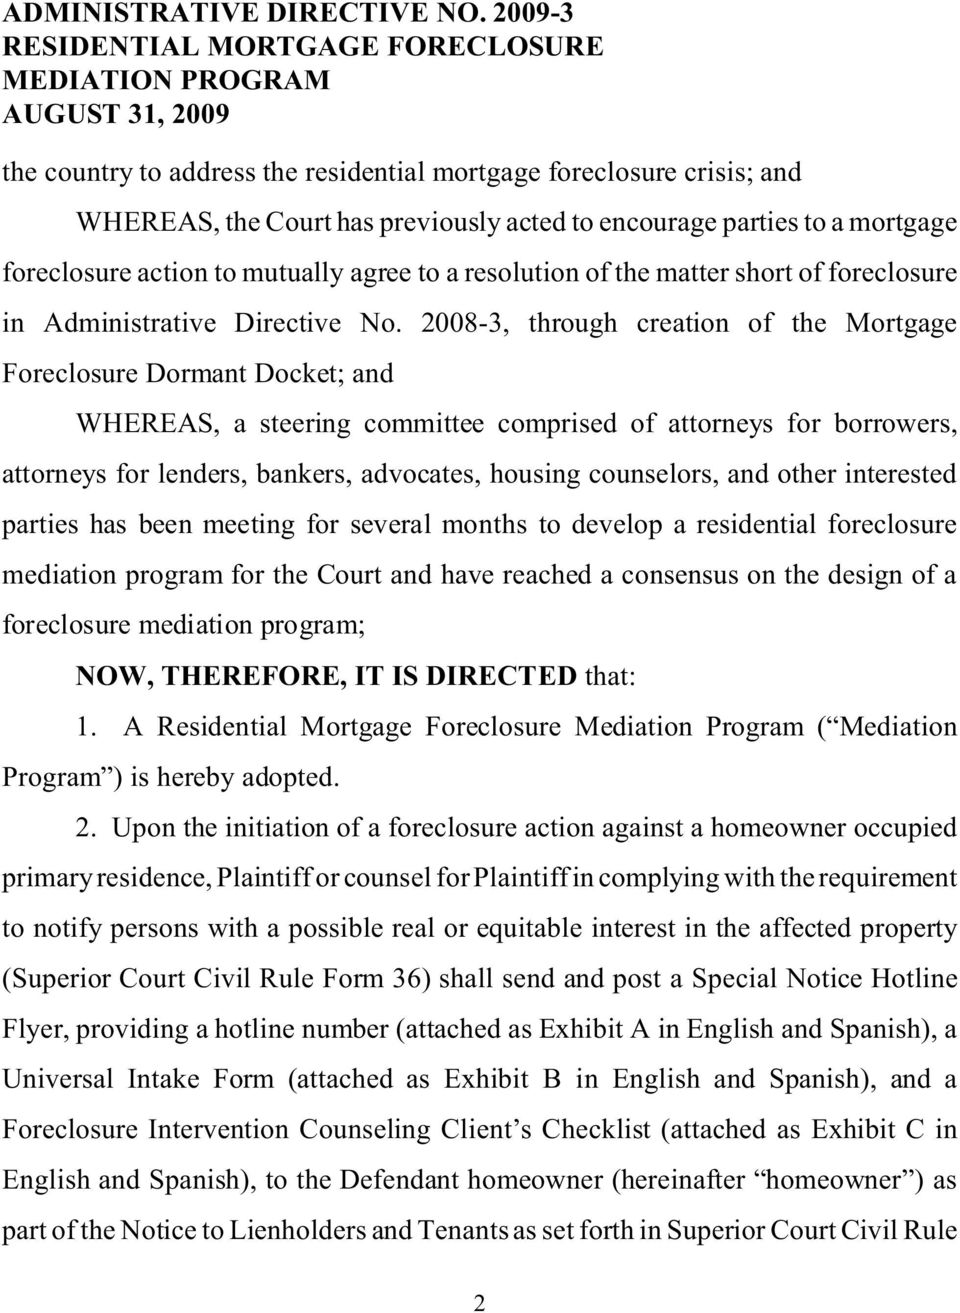 parties to a mortgage foreclosure action to mutually agree to a resolution of the matter short of foreclosure in Administrative Directive No.